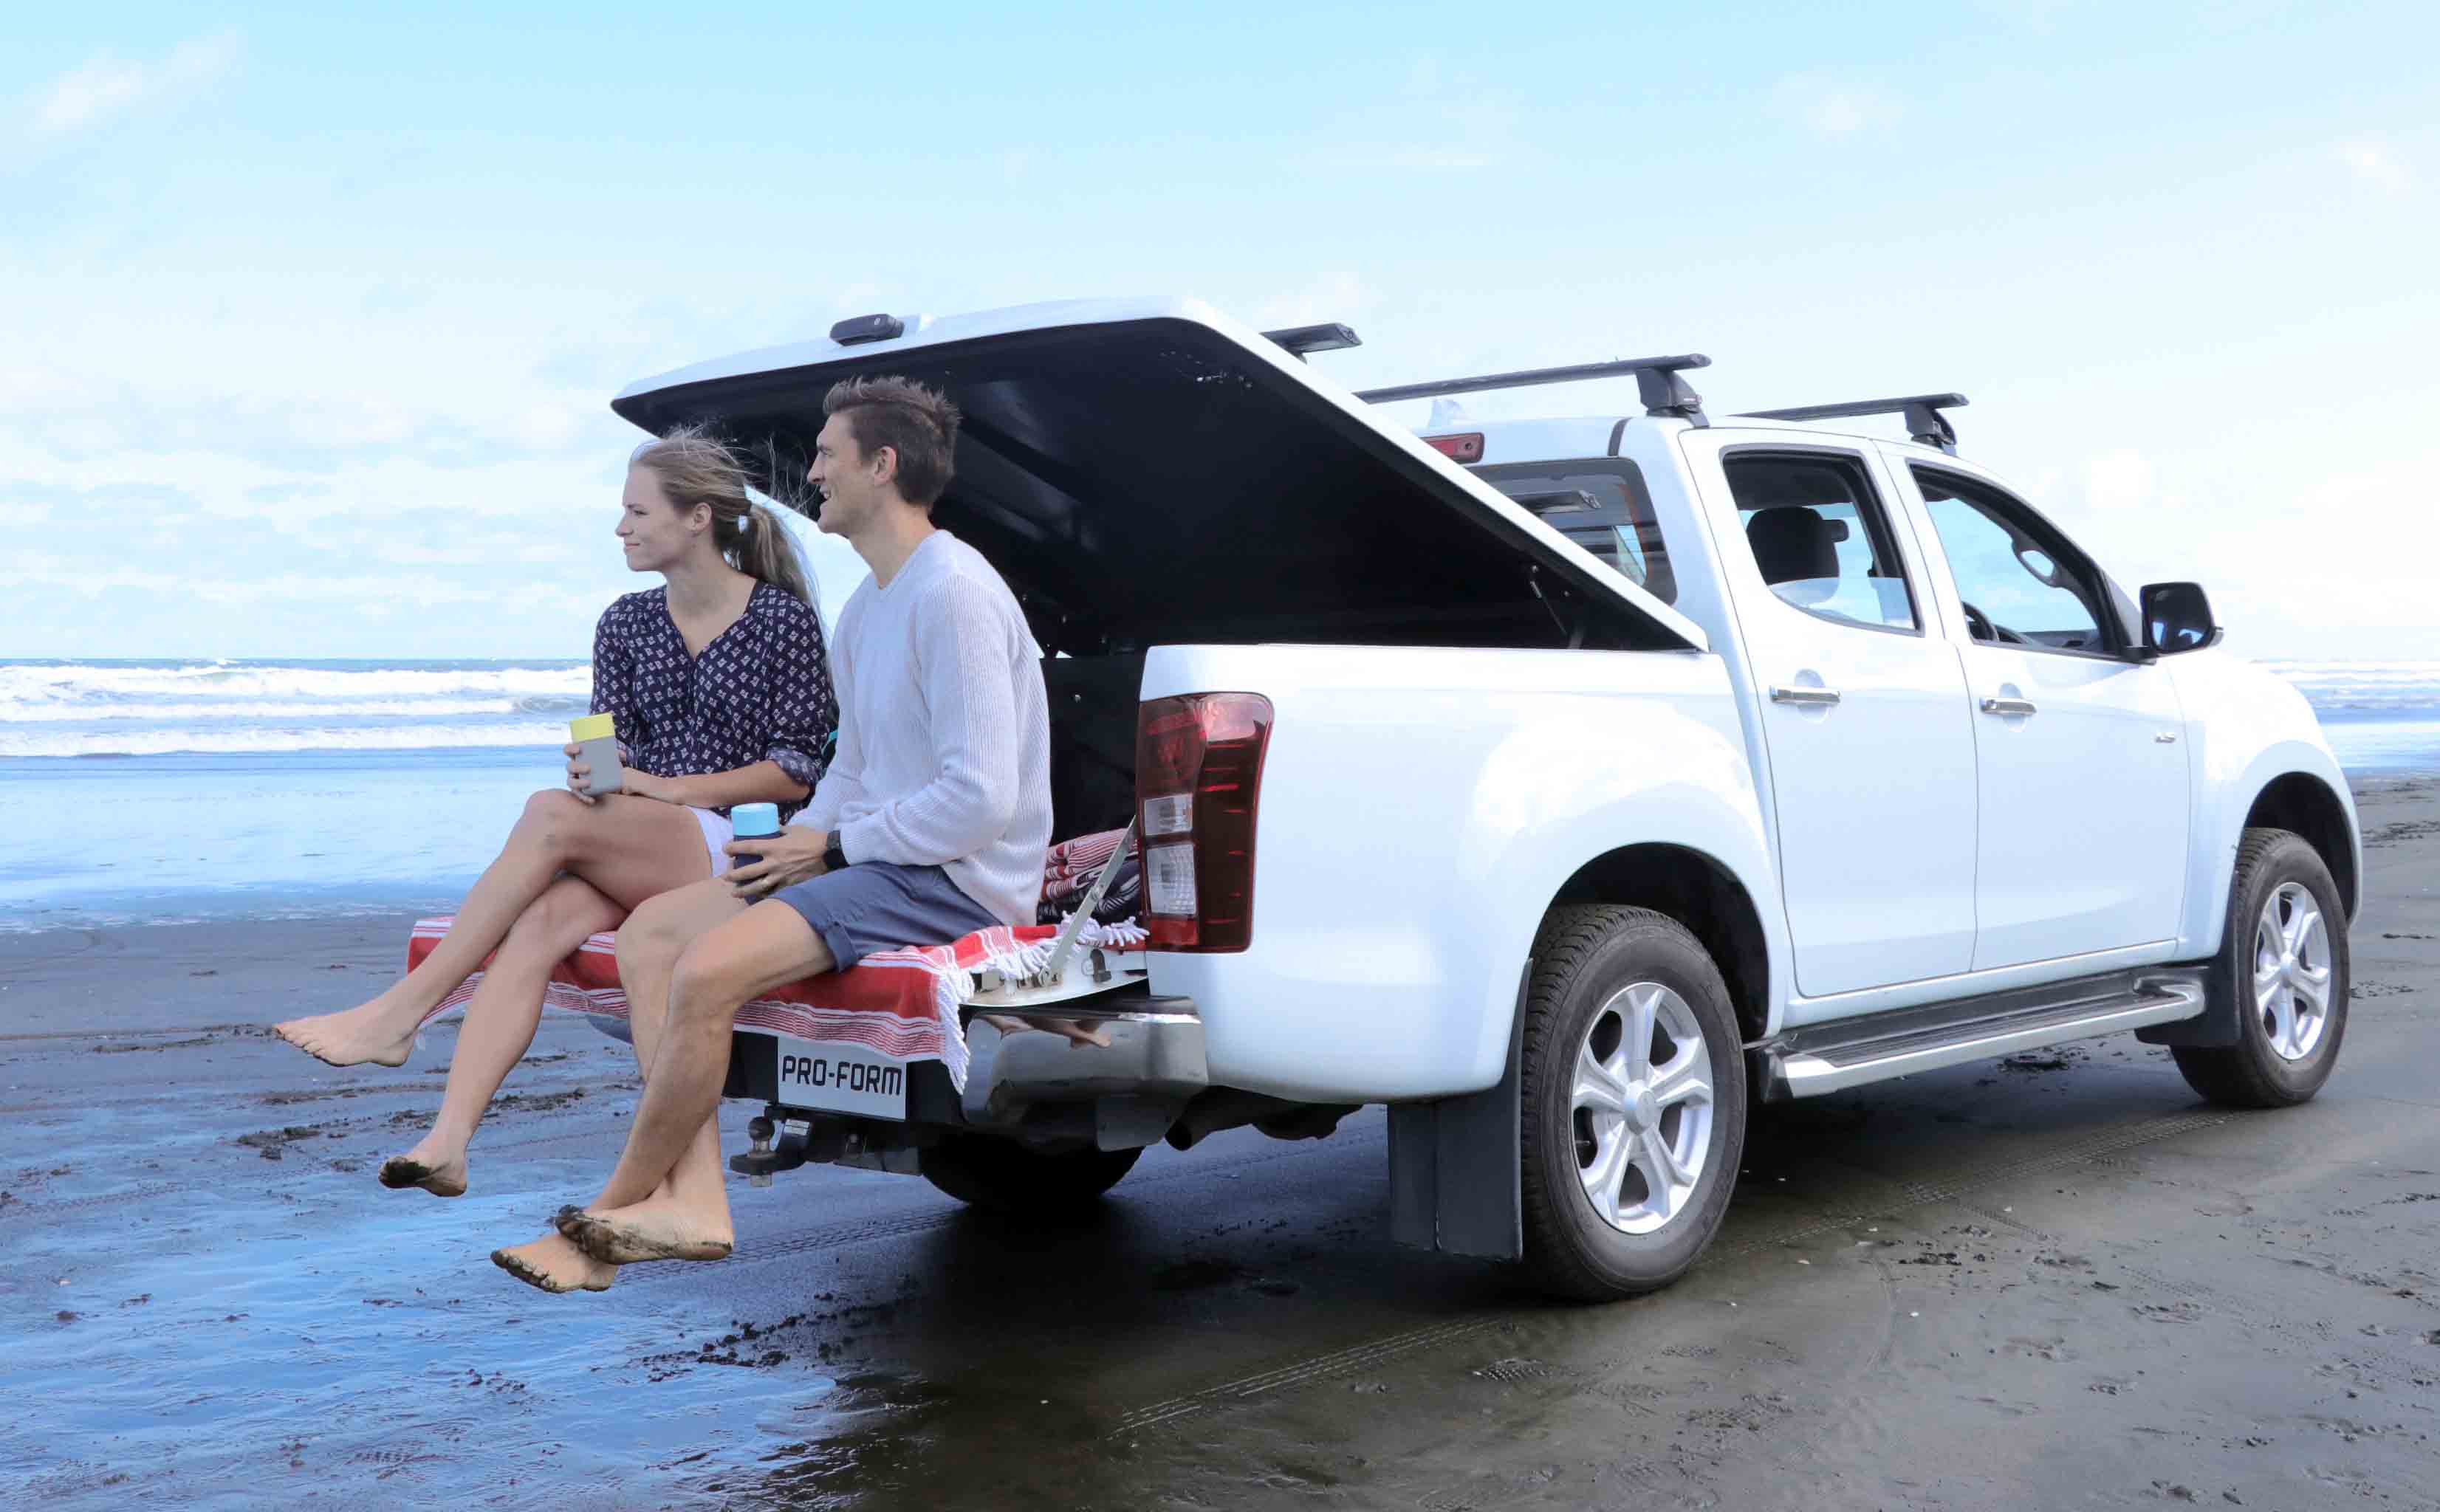 Canopy Hard Lid Roll Lid Or Soft Tonneau Cover Find The Best For Your Ute Pro Form